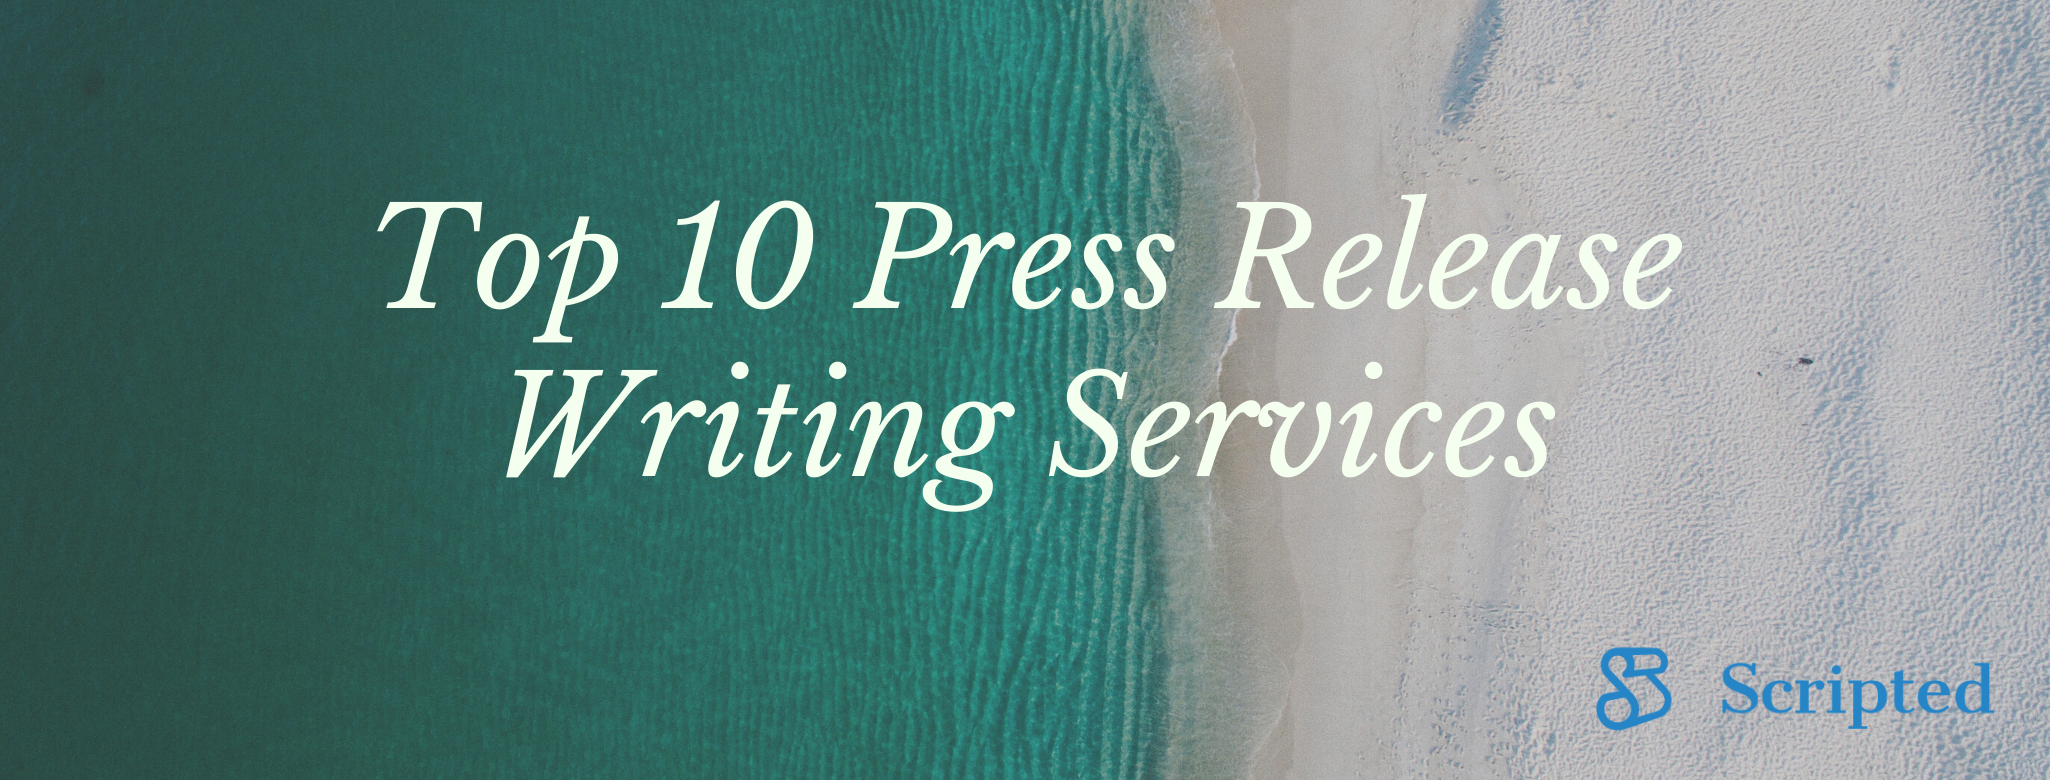 Top 10 Press Release Writing Services